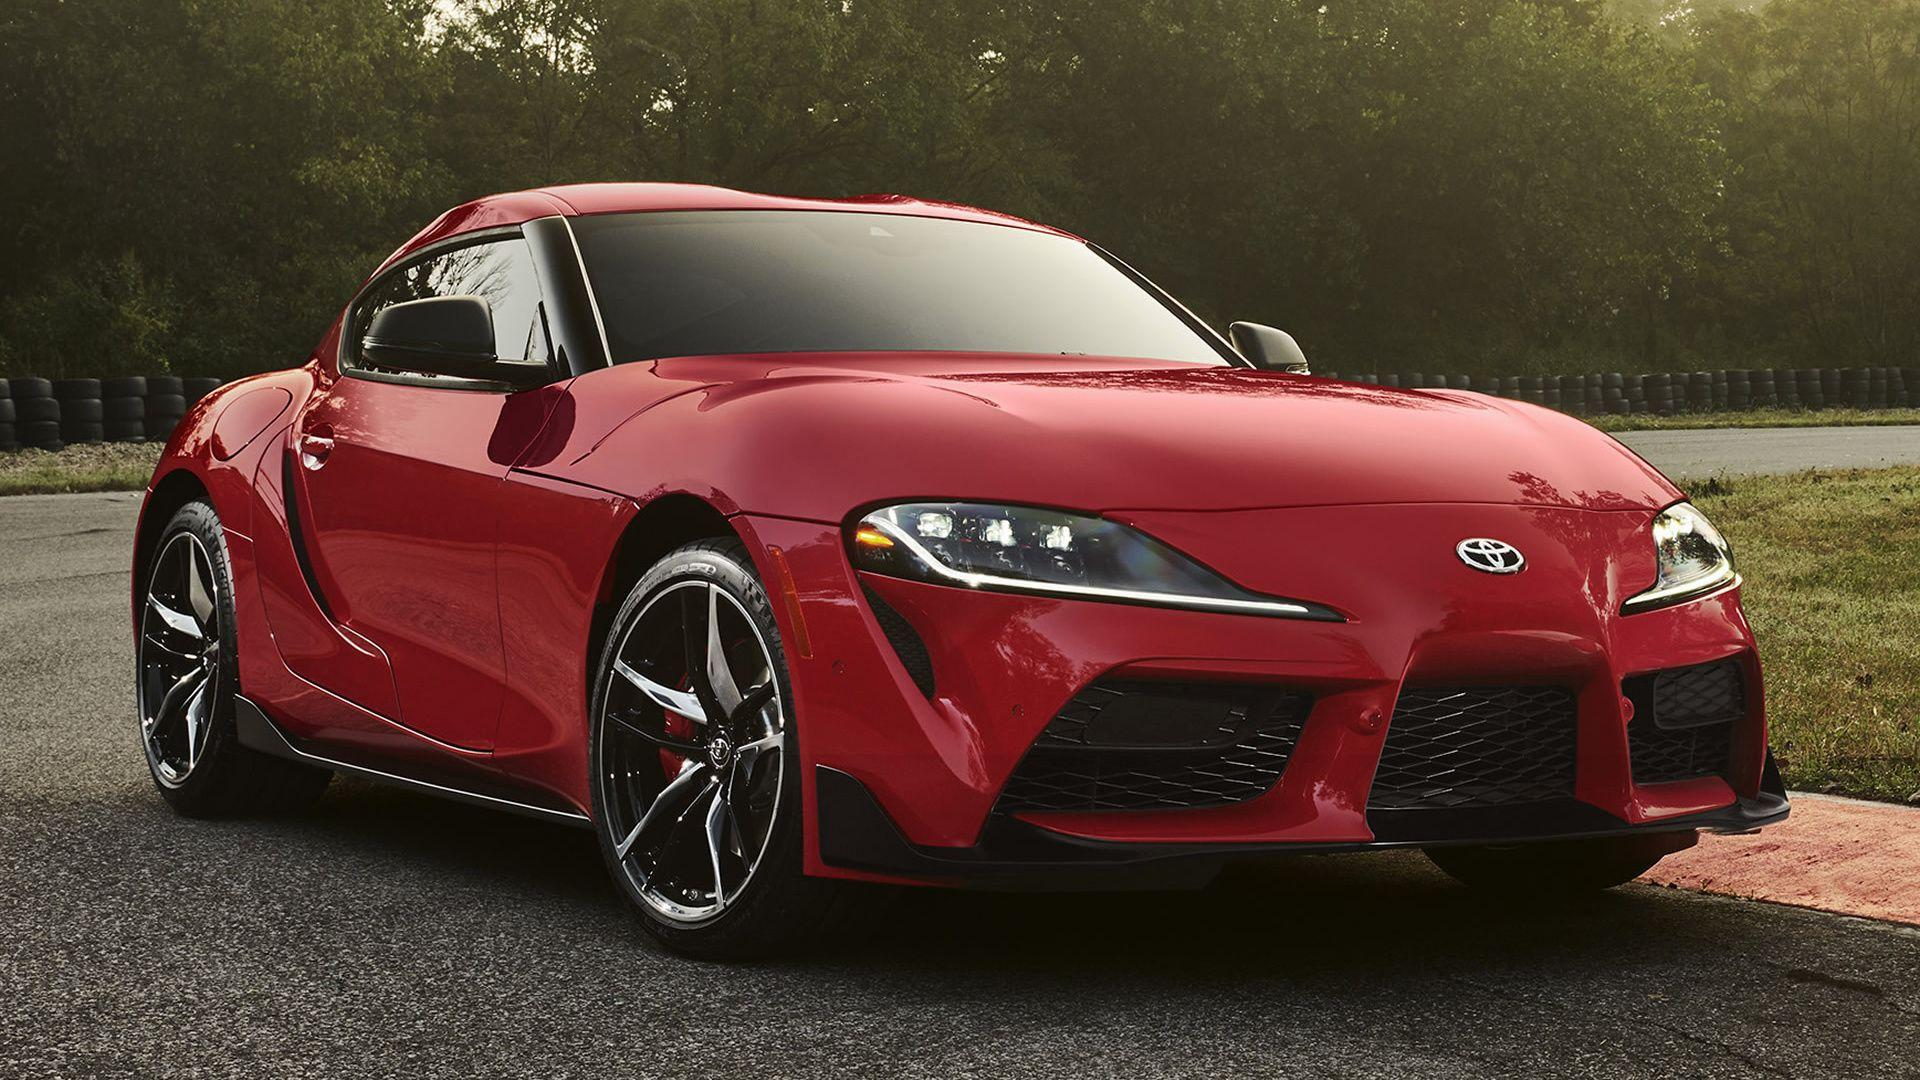 Toyota GR Supra (2020) US Wallpapers and HD Images - Car Pixel